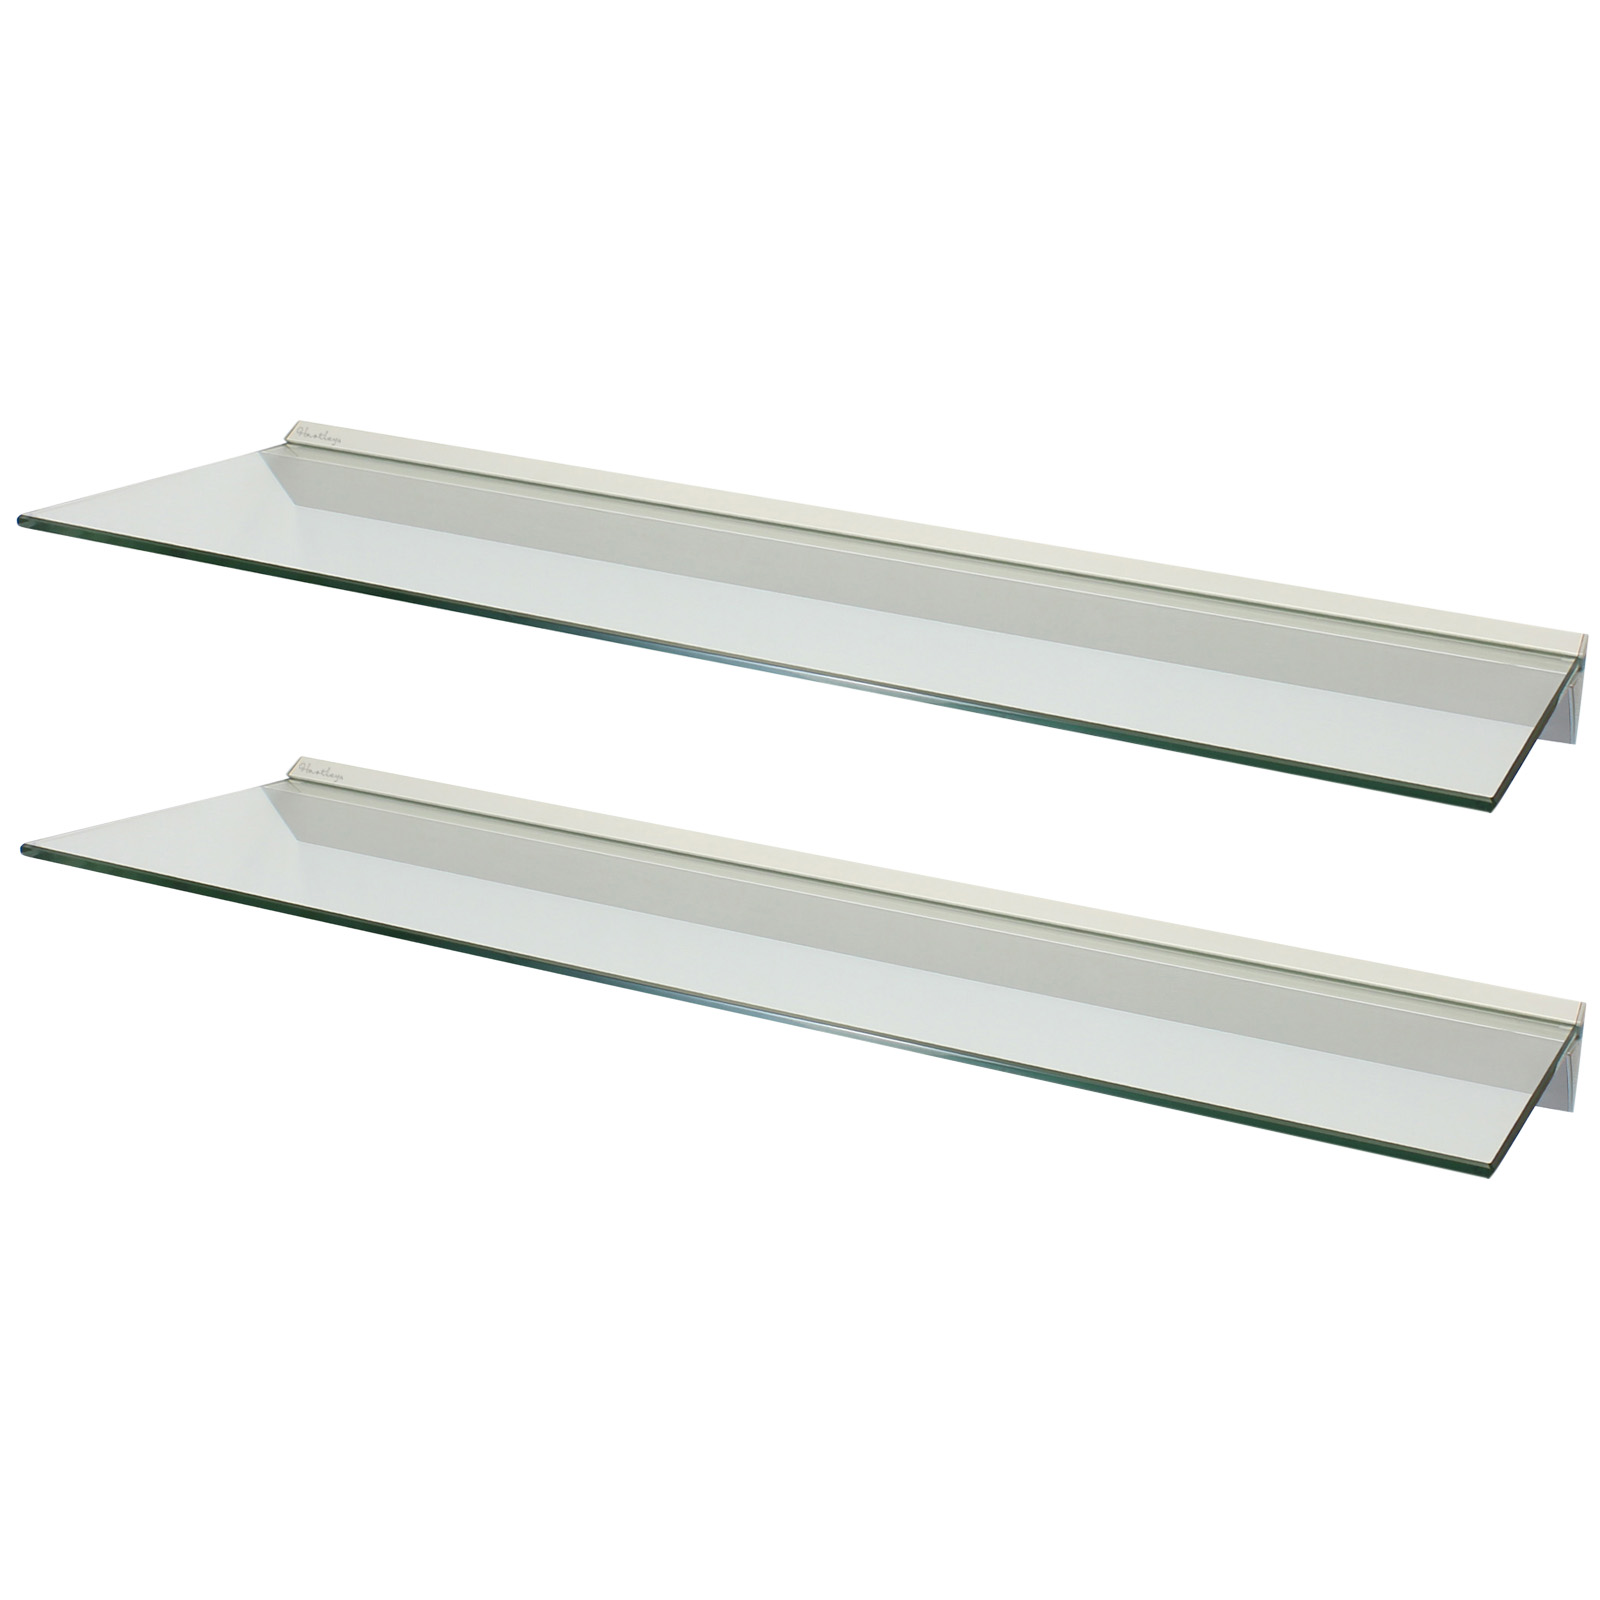 clear wall shelf pmpresssecretariat levv floating glass shelves hartleys pair greenhouse shelving homebase unfinished pine inch bathroom white chunky stick tile flooring